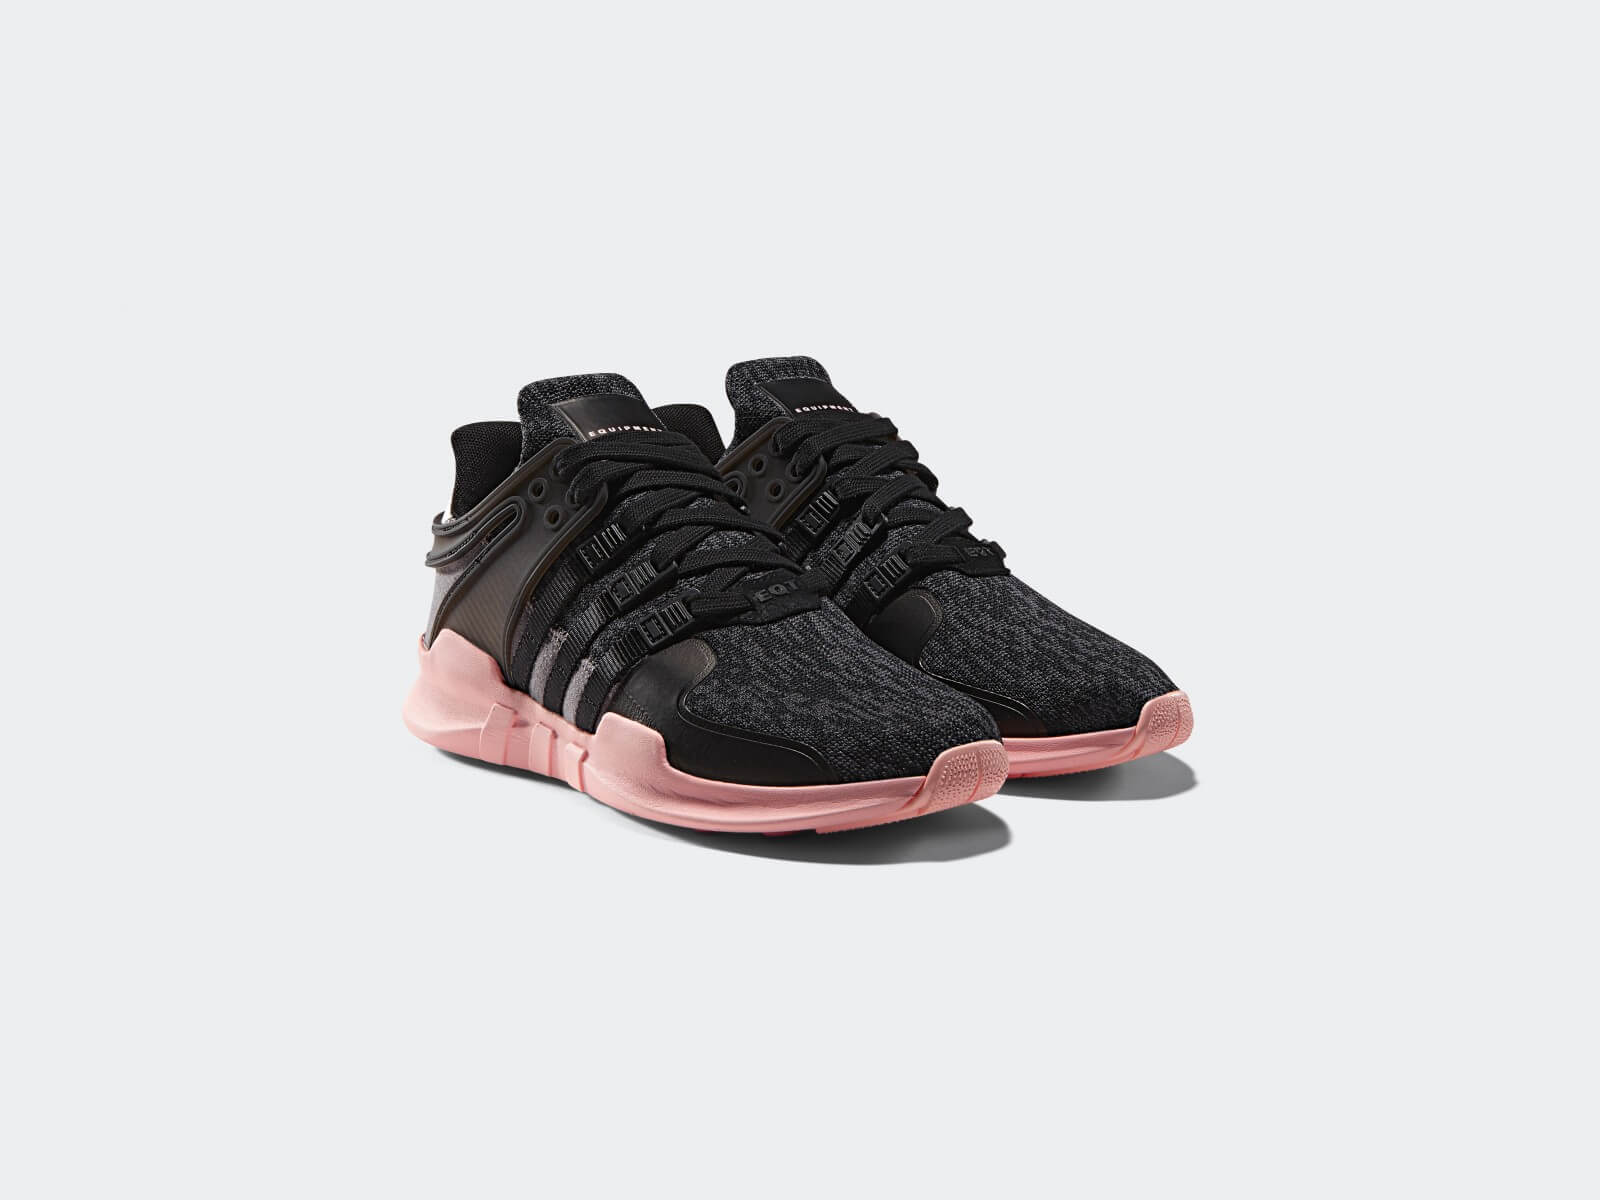 adidas EQT Support 93/17 Footlocker